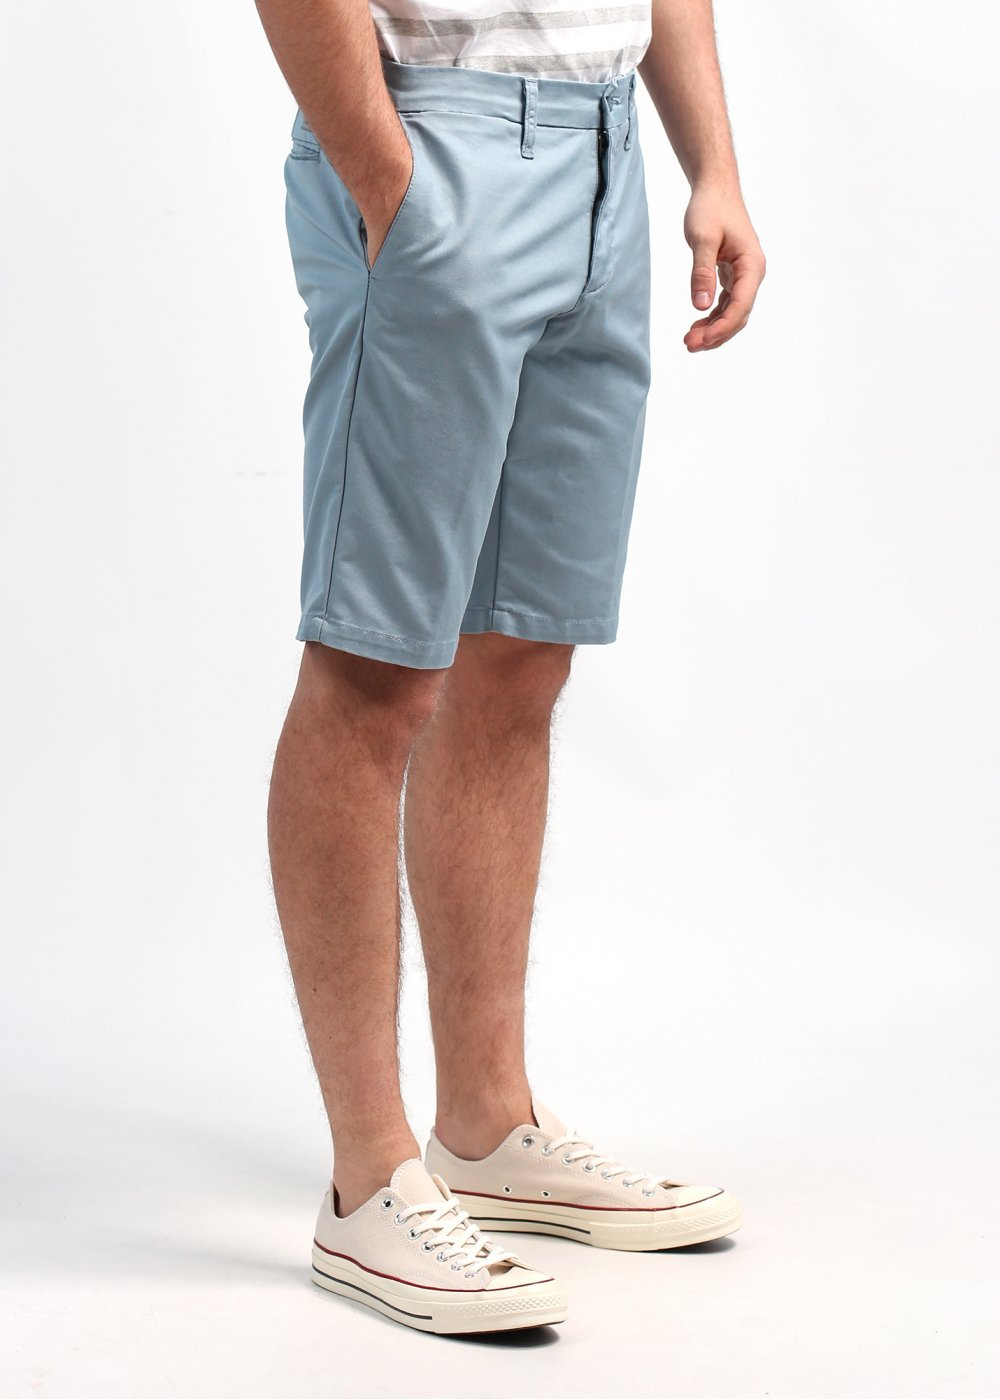 Ice Blue Shorts